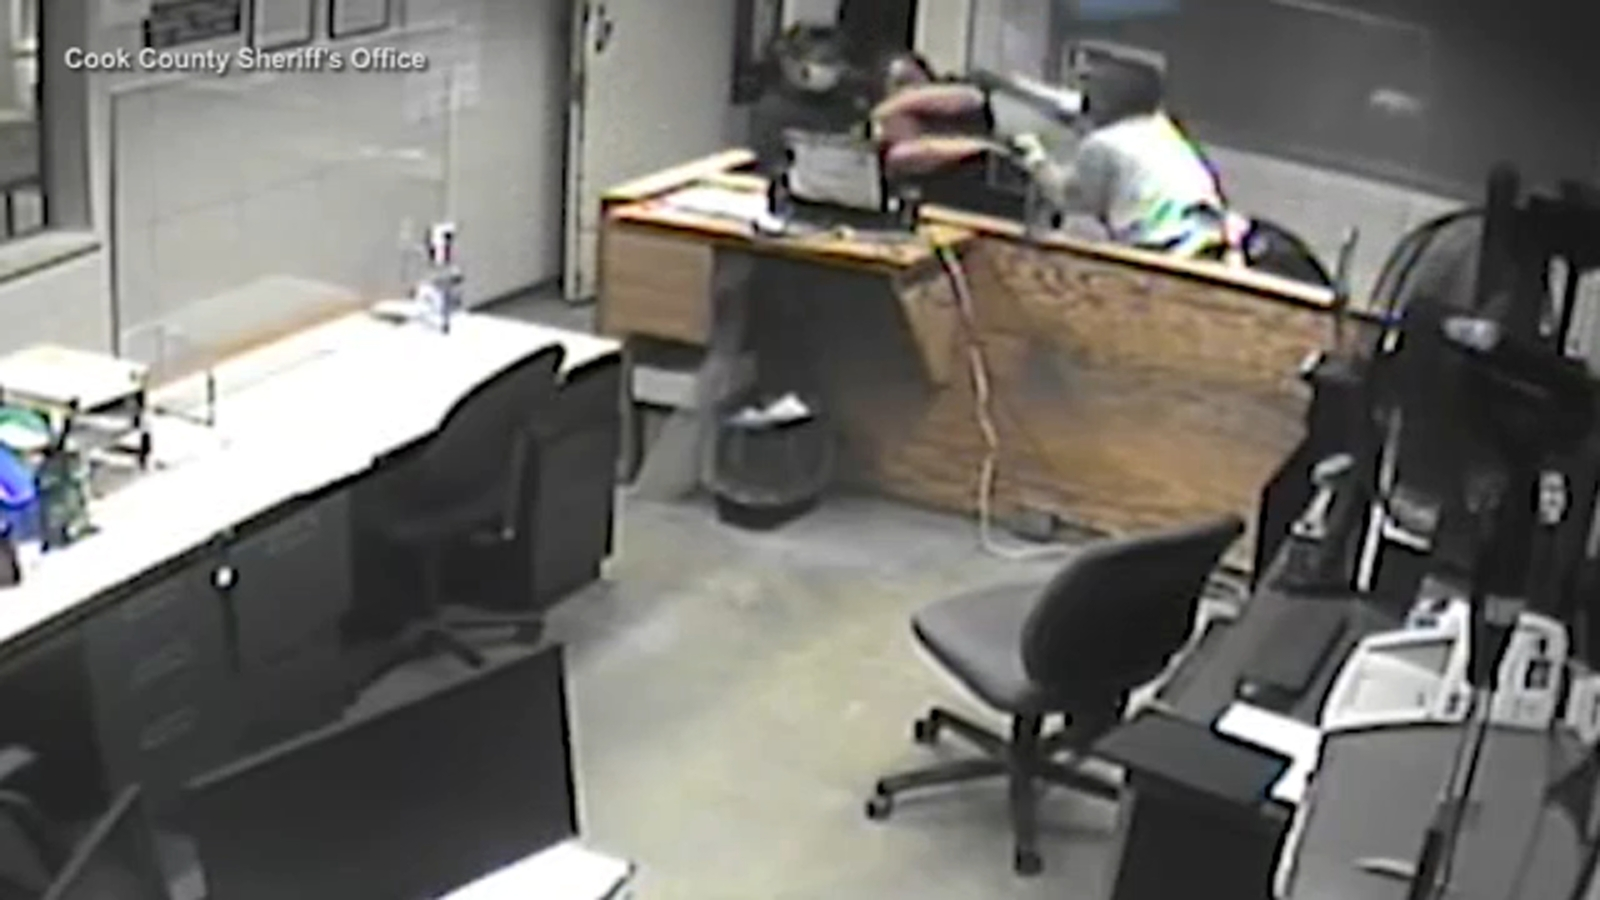 Skokie courthouse attack that injured 4 deputies caught on surveillance video